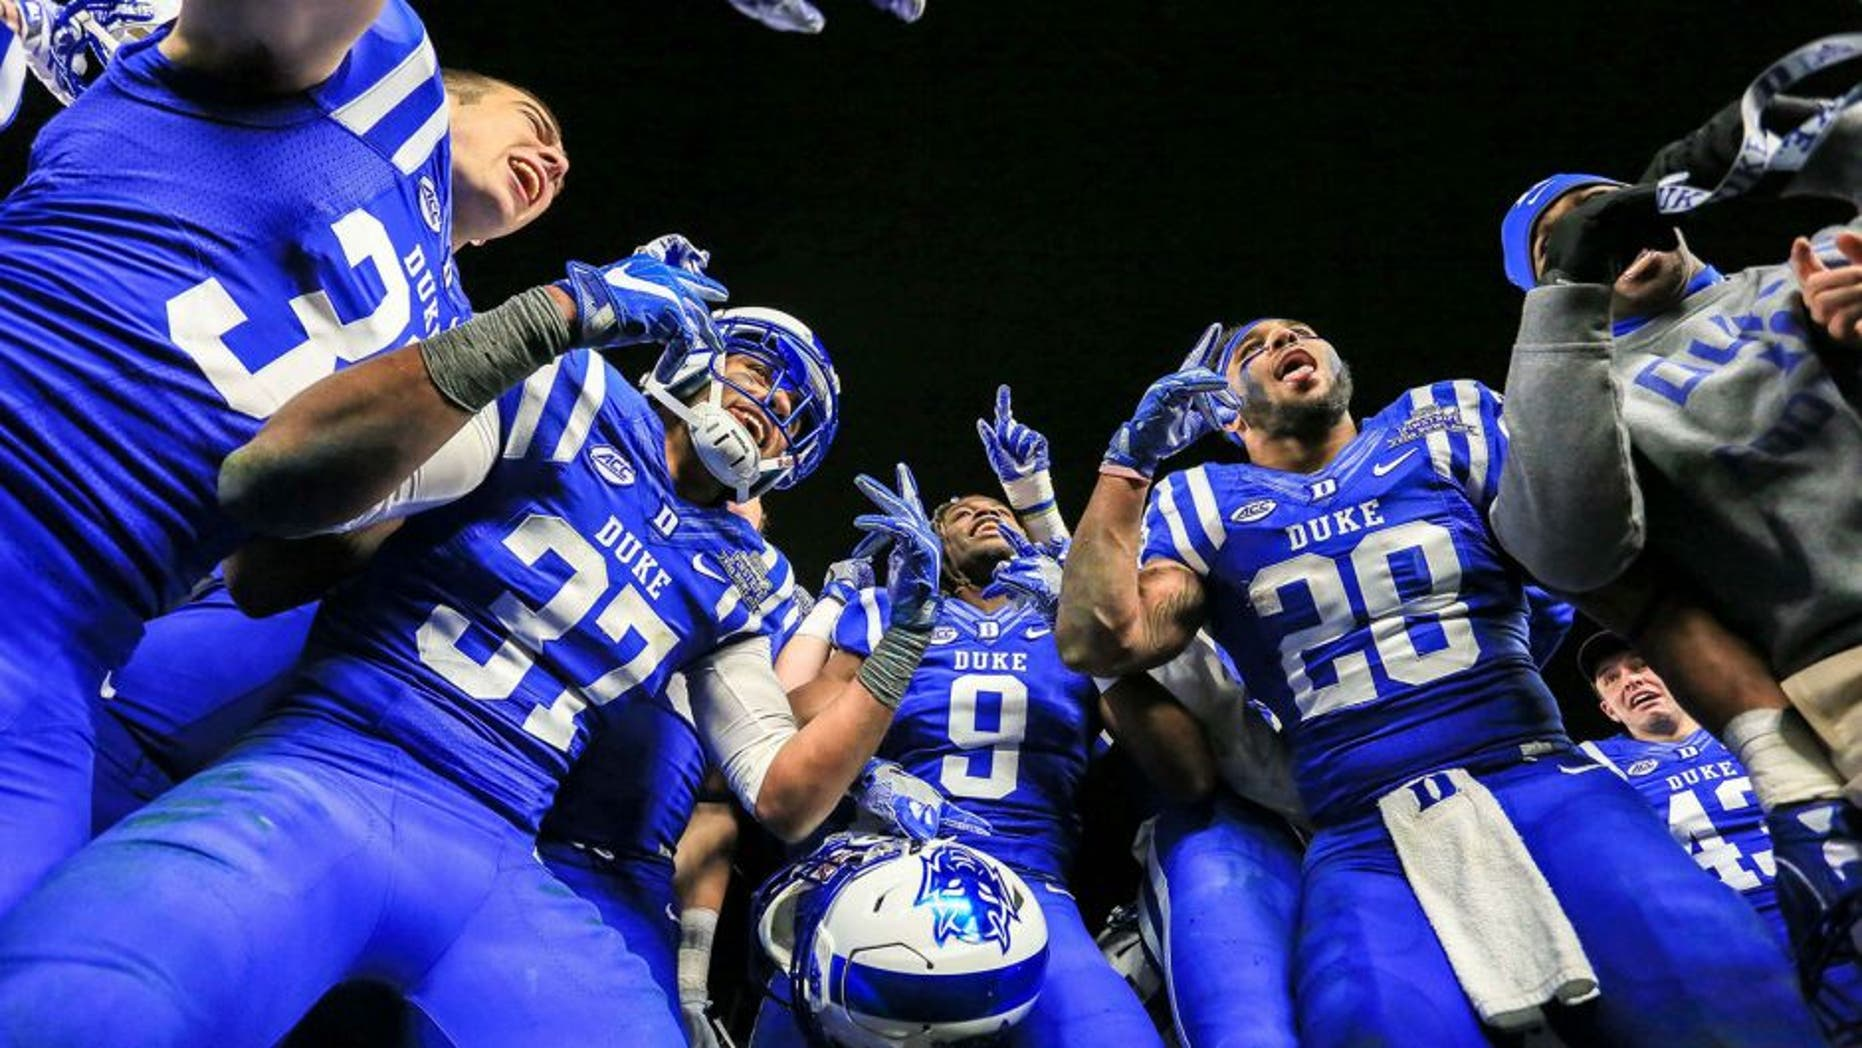 Dec 26, 2015; Bronx, NY, USA; The Duke Blue Devils players celebrate after their 2015 New Era Pinstripe Bowl against the Indiana Hoosiers at Yankee Stadium. The Blue Devils won 44-41 in overtime. Mandatory Credit: Vincent Carchietta-USA TODAY Sports